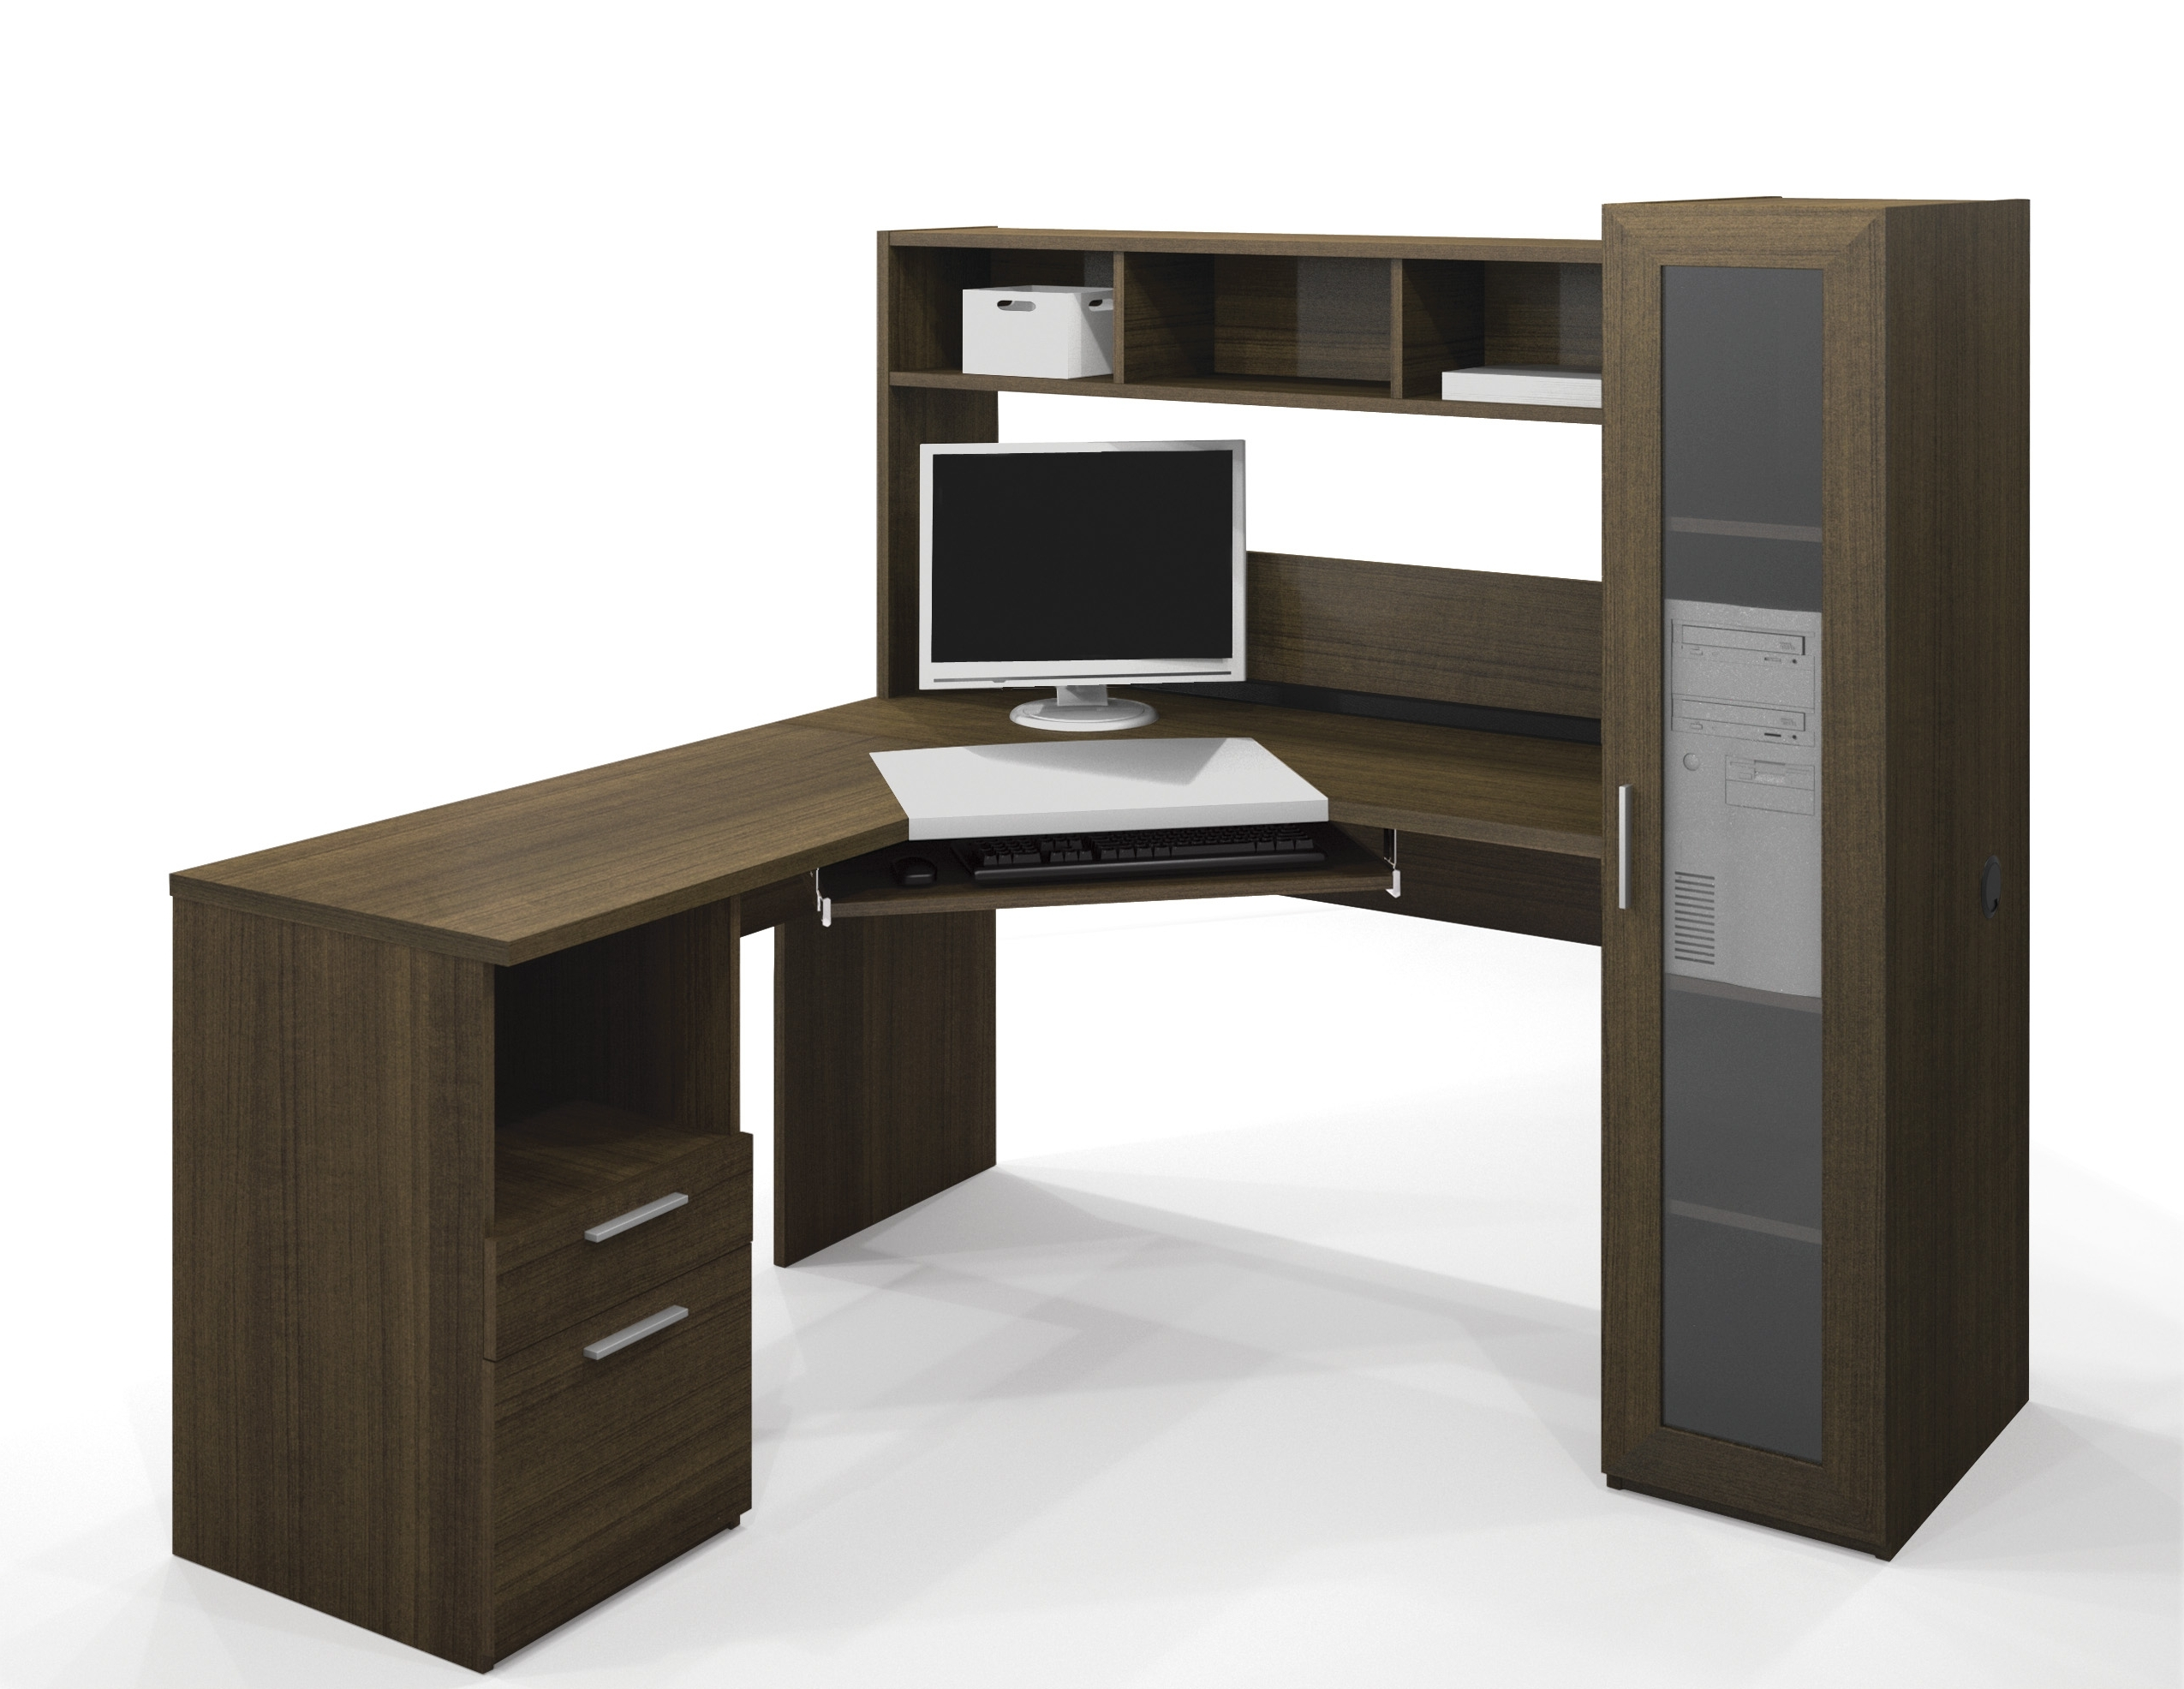 Computer Desks With Shelves Pertaining To Well Liked Furniture : Black Corner Desk With Shelves Home Desk Furniture (View 11 of 20)